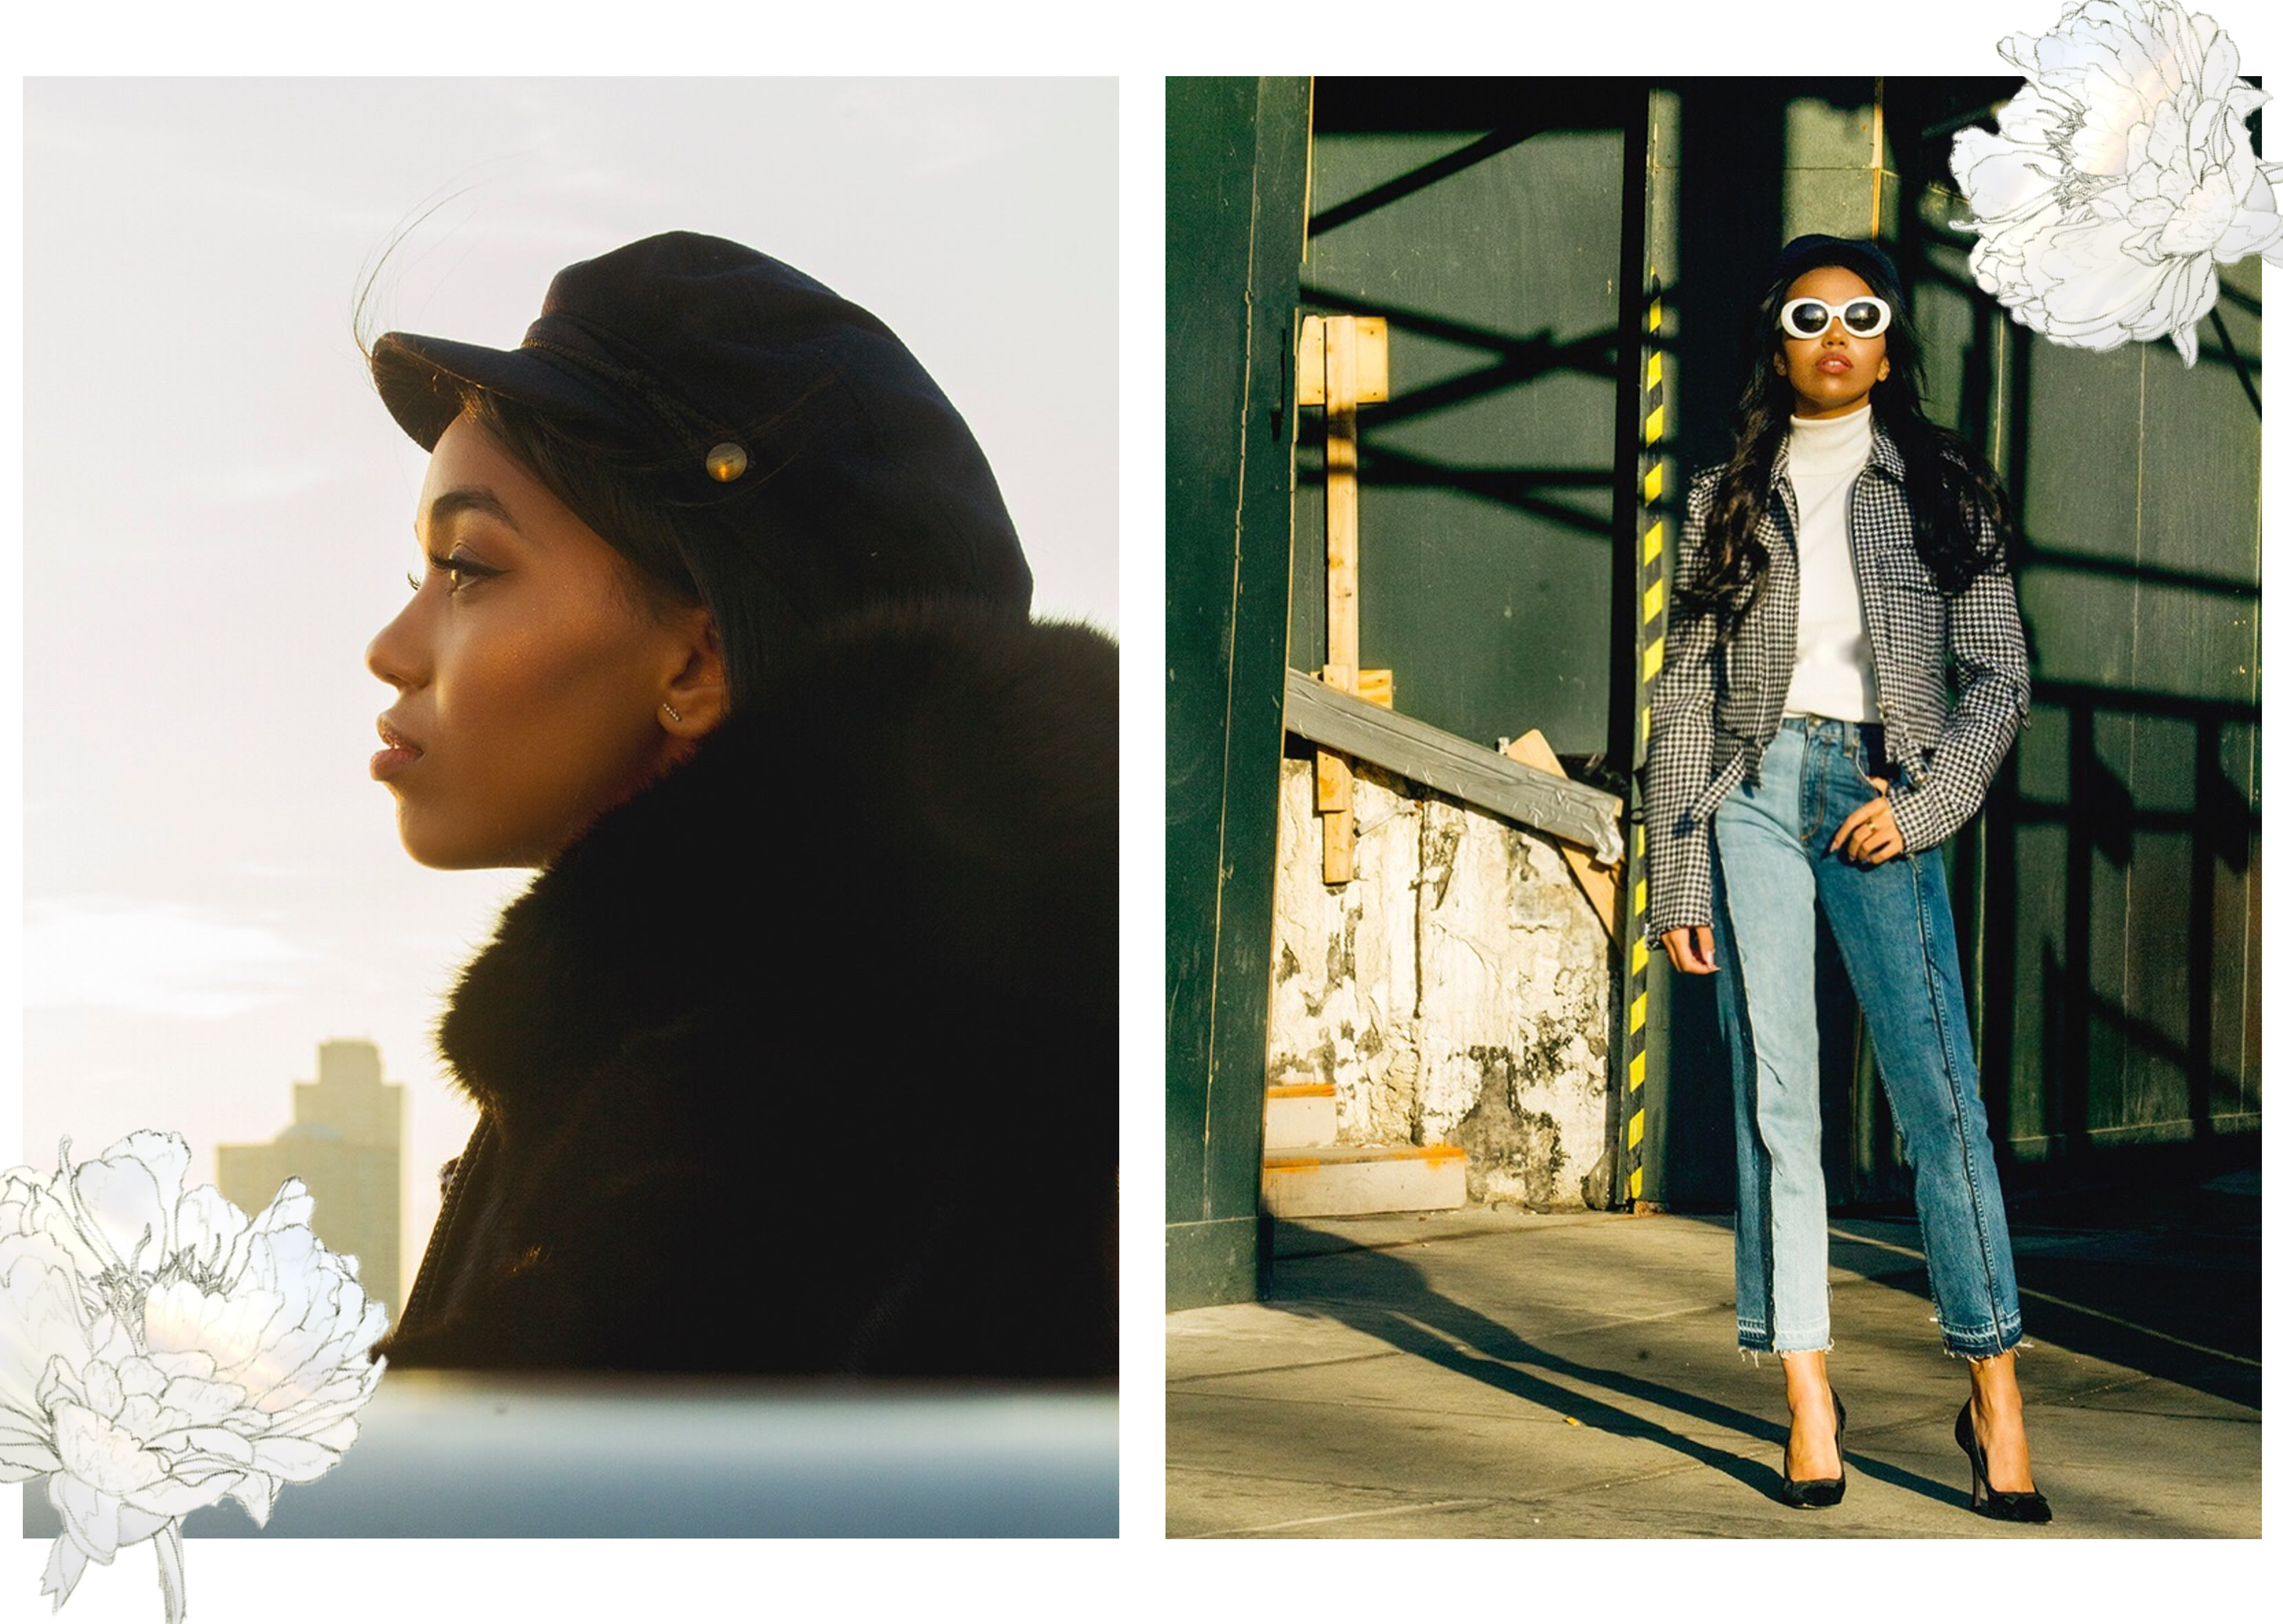 Baker Boy Hat Trend // New York Travel Diary // Rag & Bone Two Tone Crop Jeans // ASOS White Turtleneck // J.W. Anderson Cropped Houndstooth Jacket // Velvet Bow Manolo Blahniks // Louis Vuitton Mini Backpack // ASOS Baker Boy Hat // Los Angeles Fashion Blogger Daphne Blunt // Photography by Michael Donovan: To Style, With Love